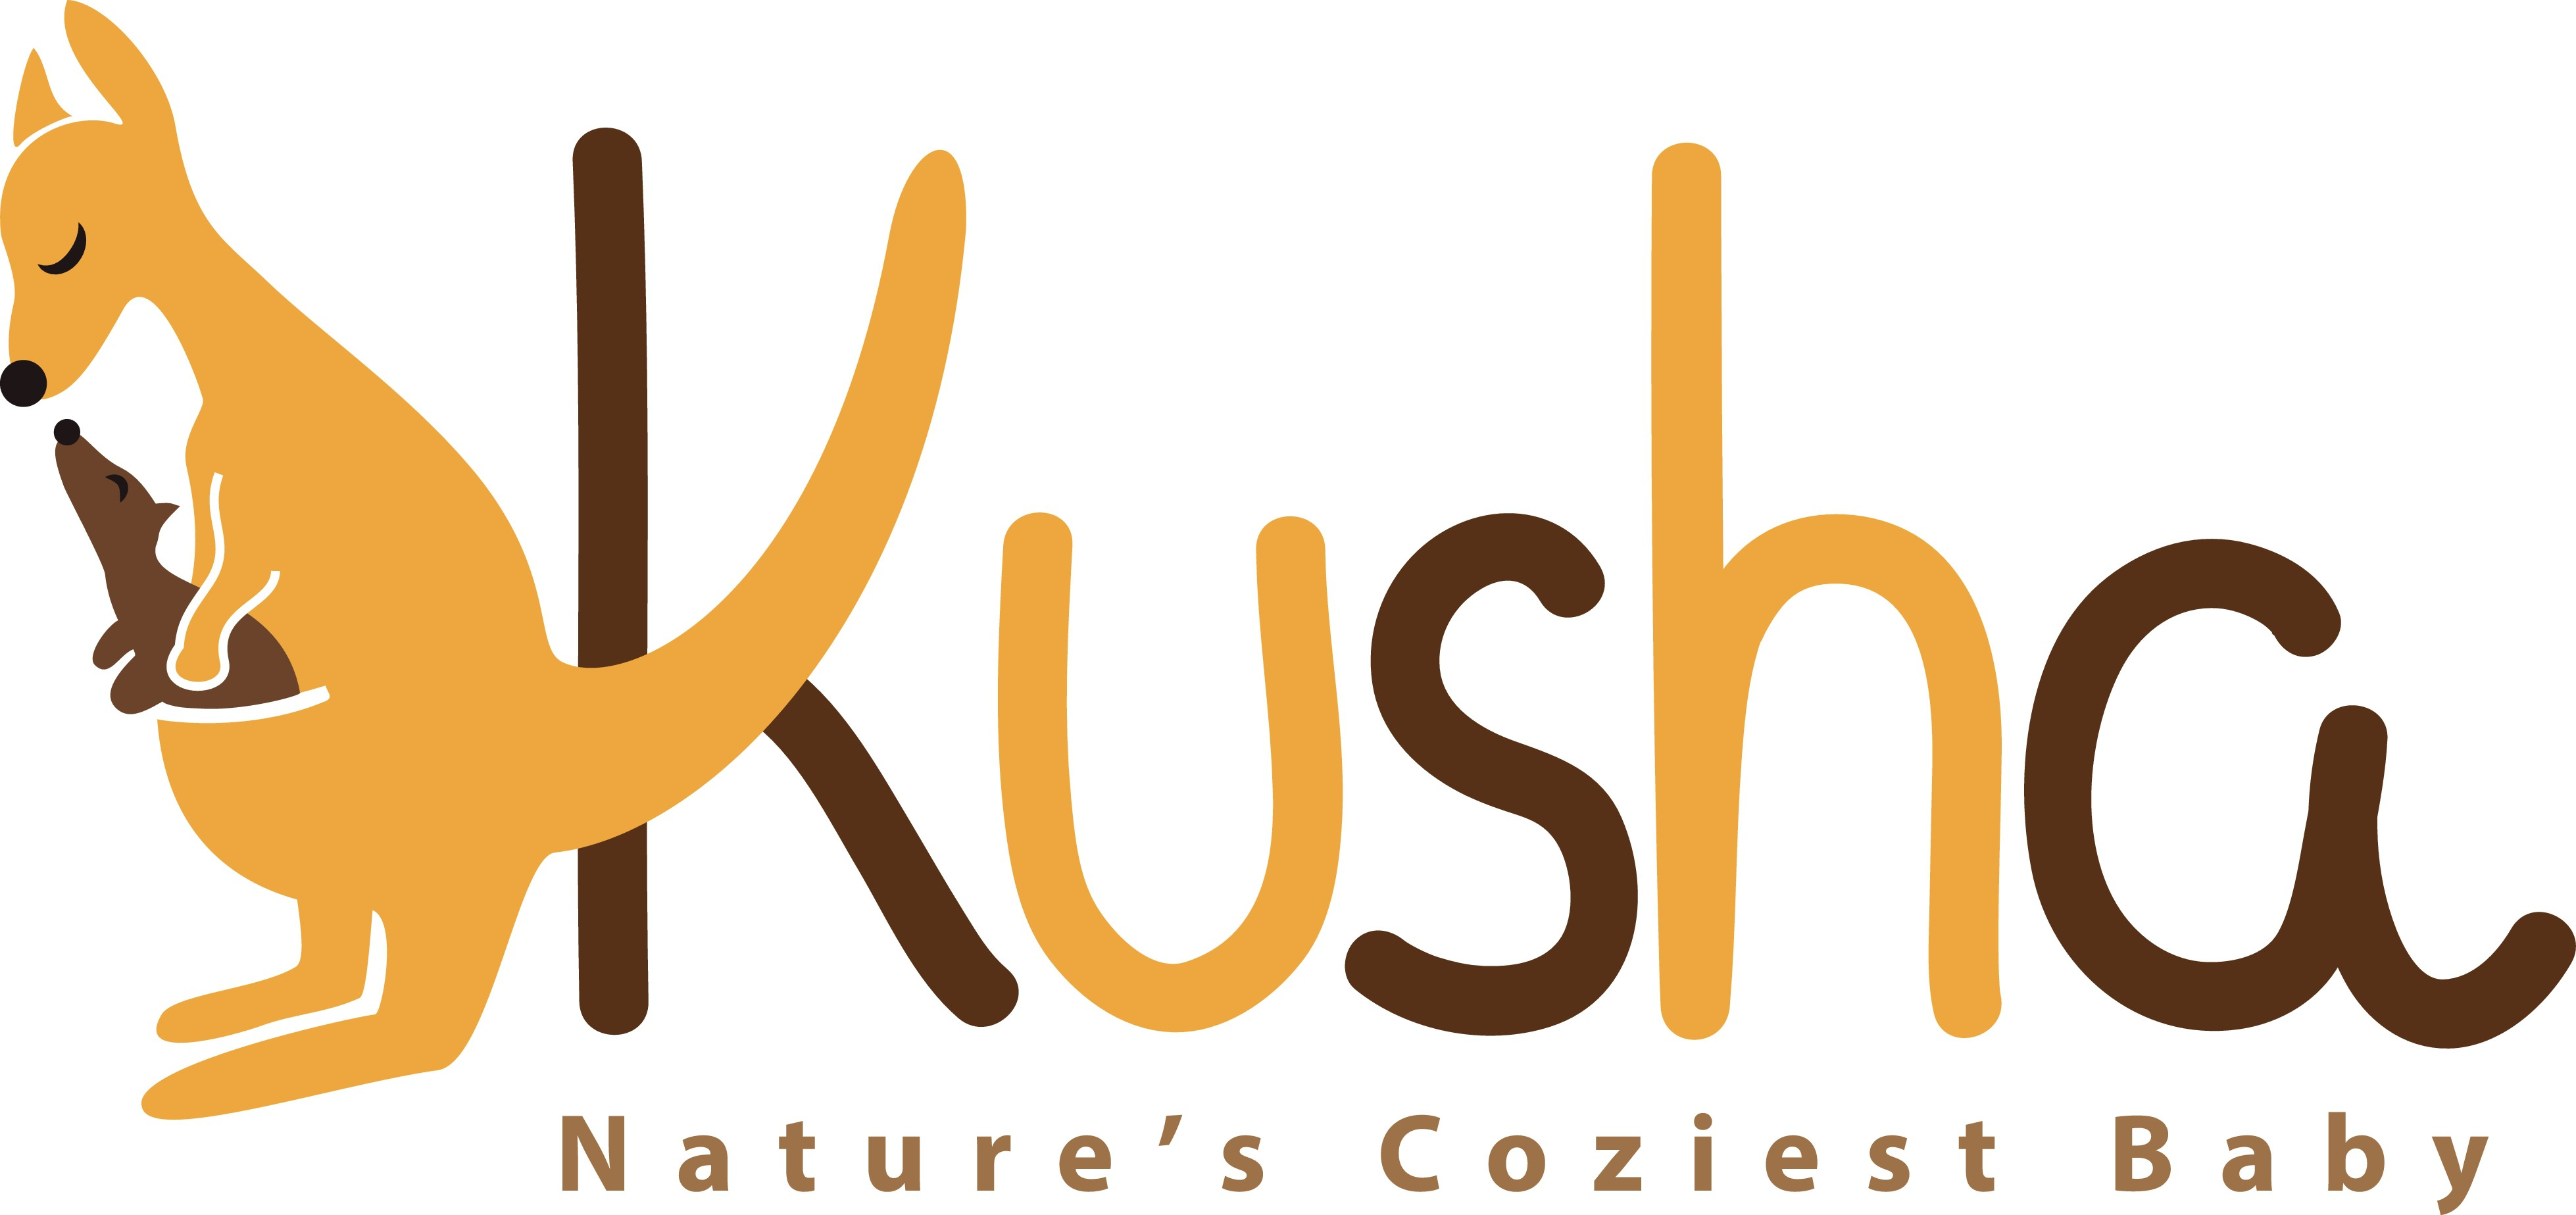 Create a logo for Kusha, a premium baby carrier brand for babies using more natural and comfortable fabrics